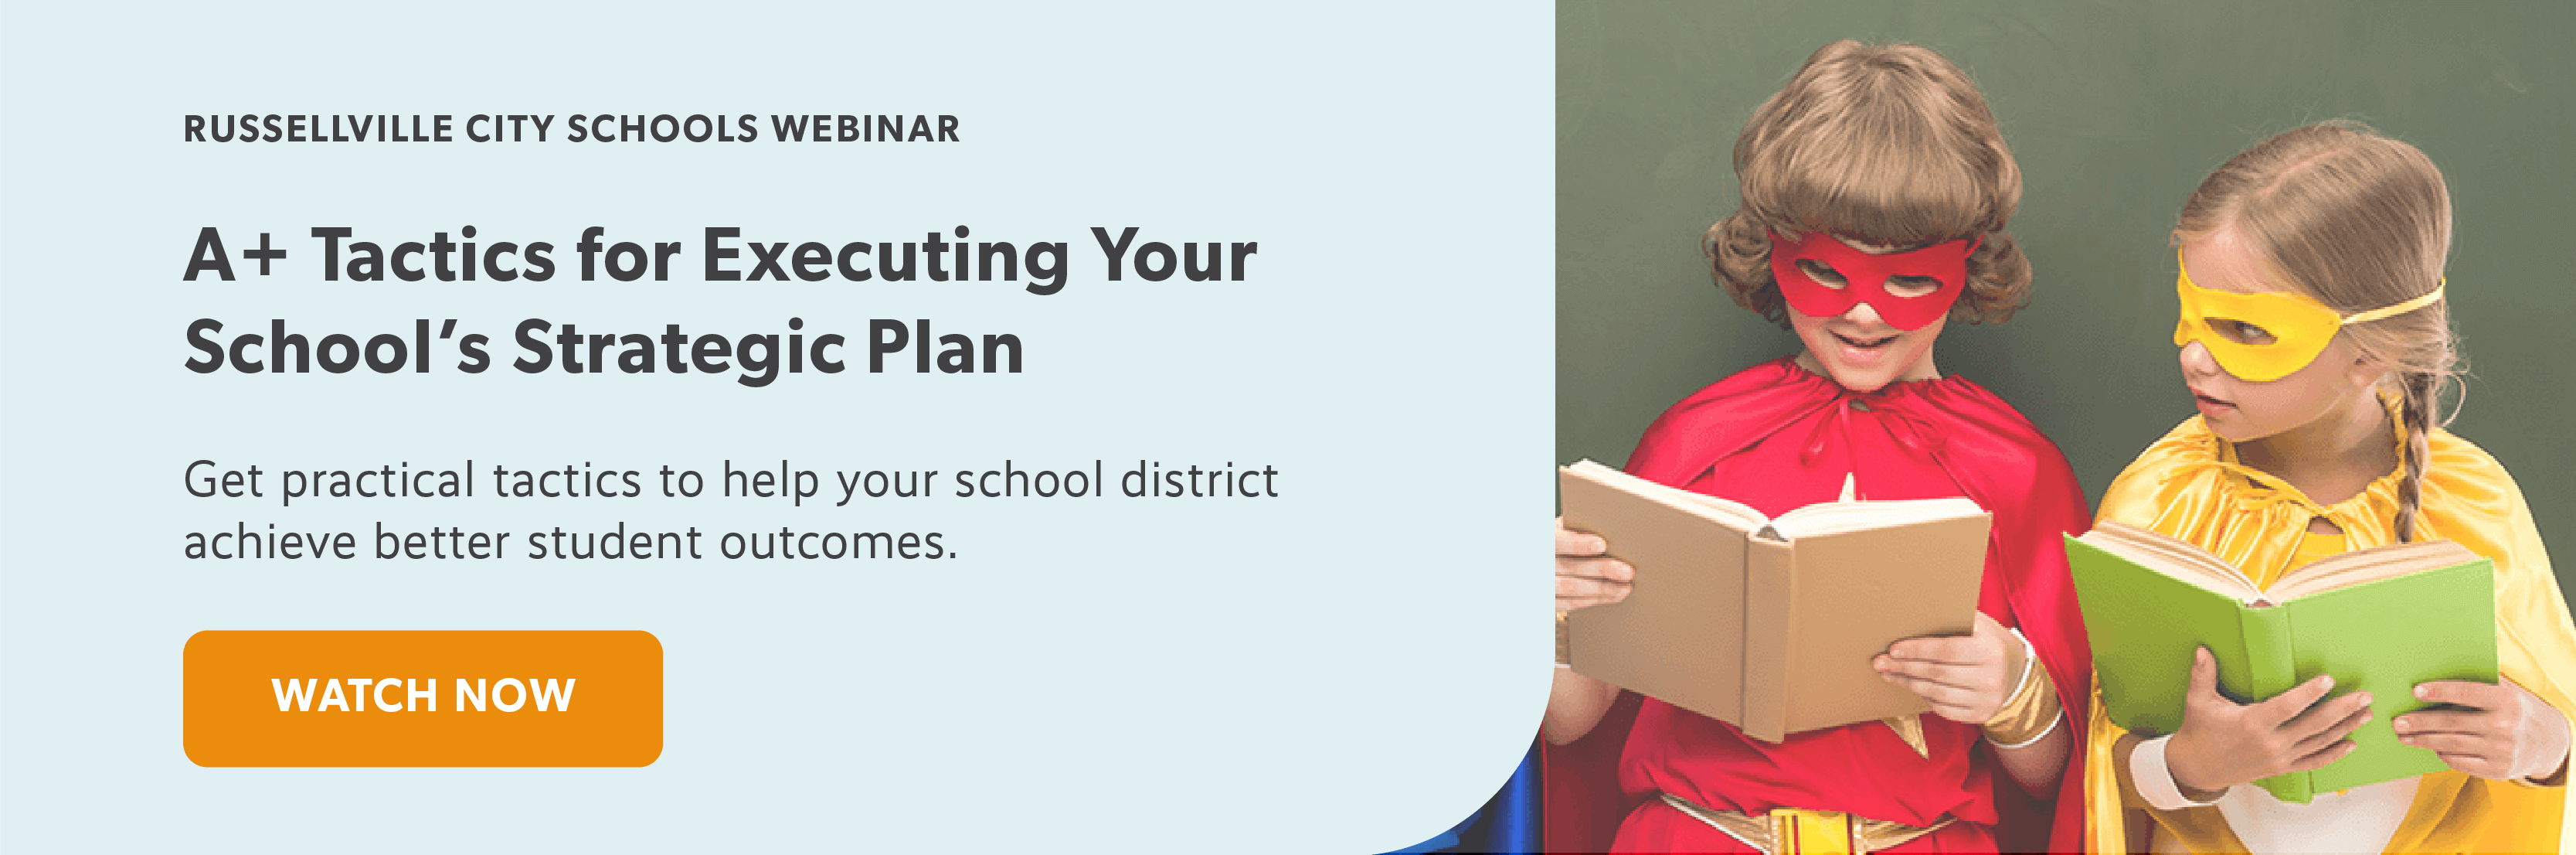 Tactics for Executing Your School Strategic Plan